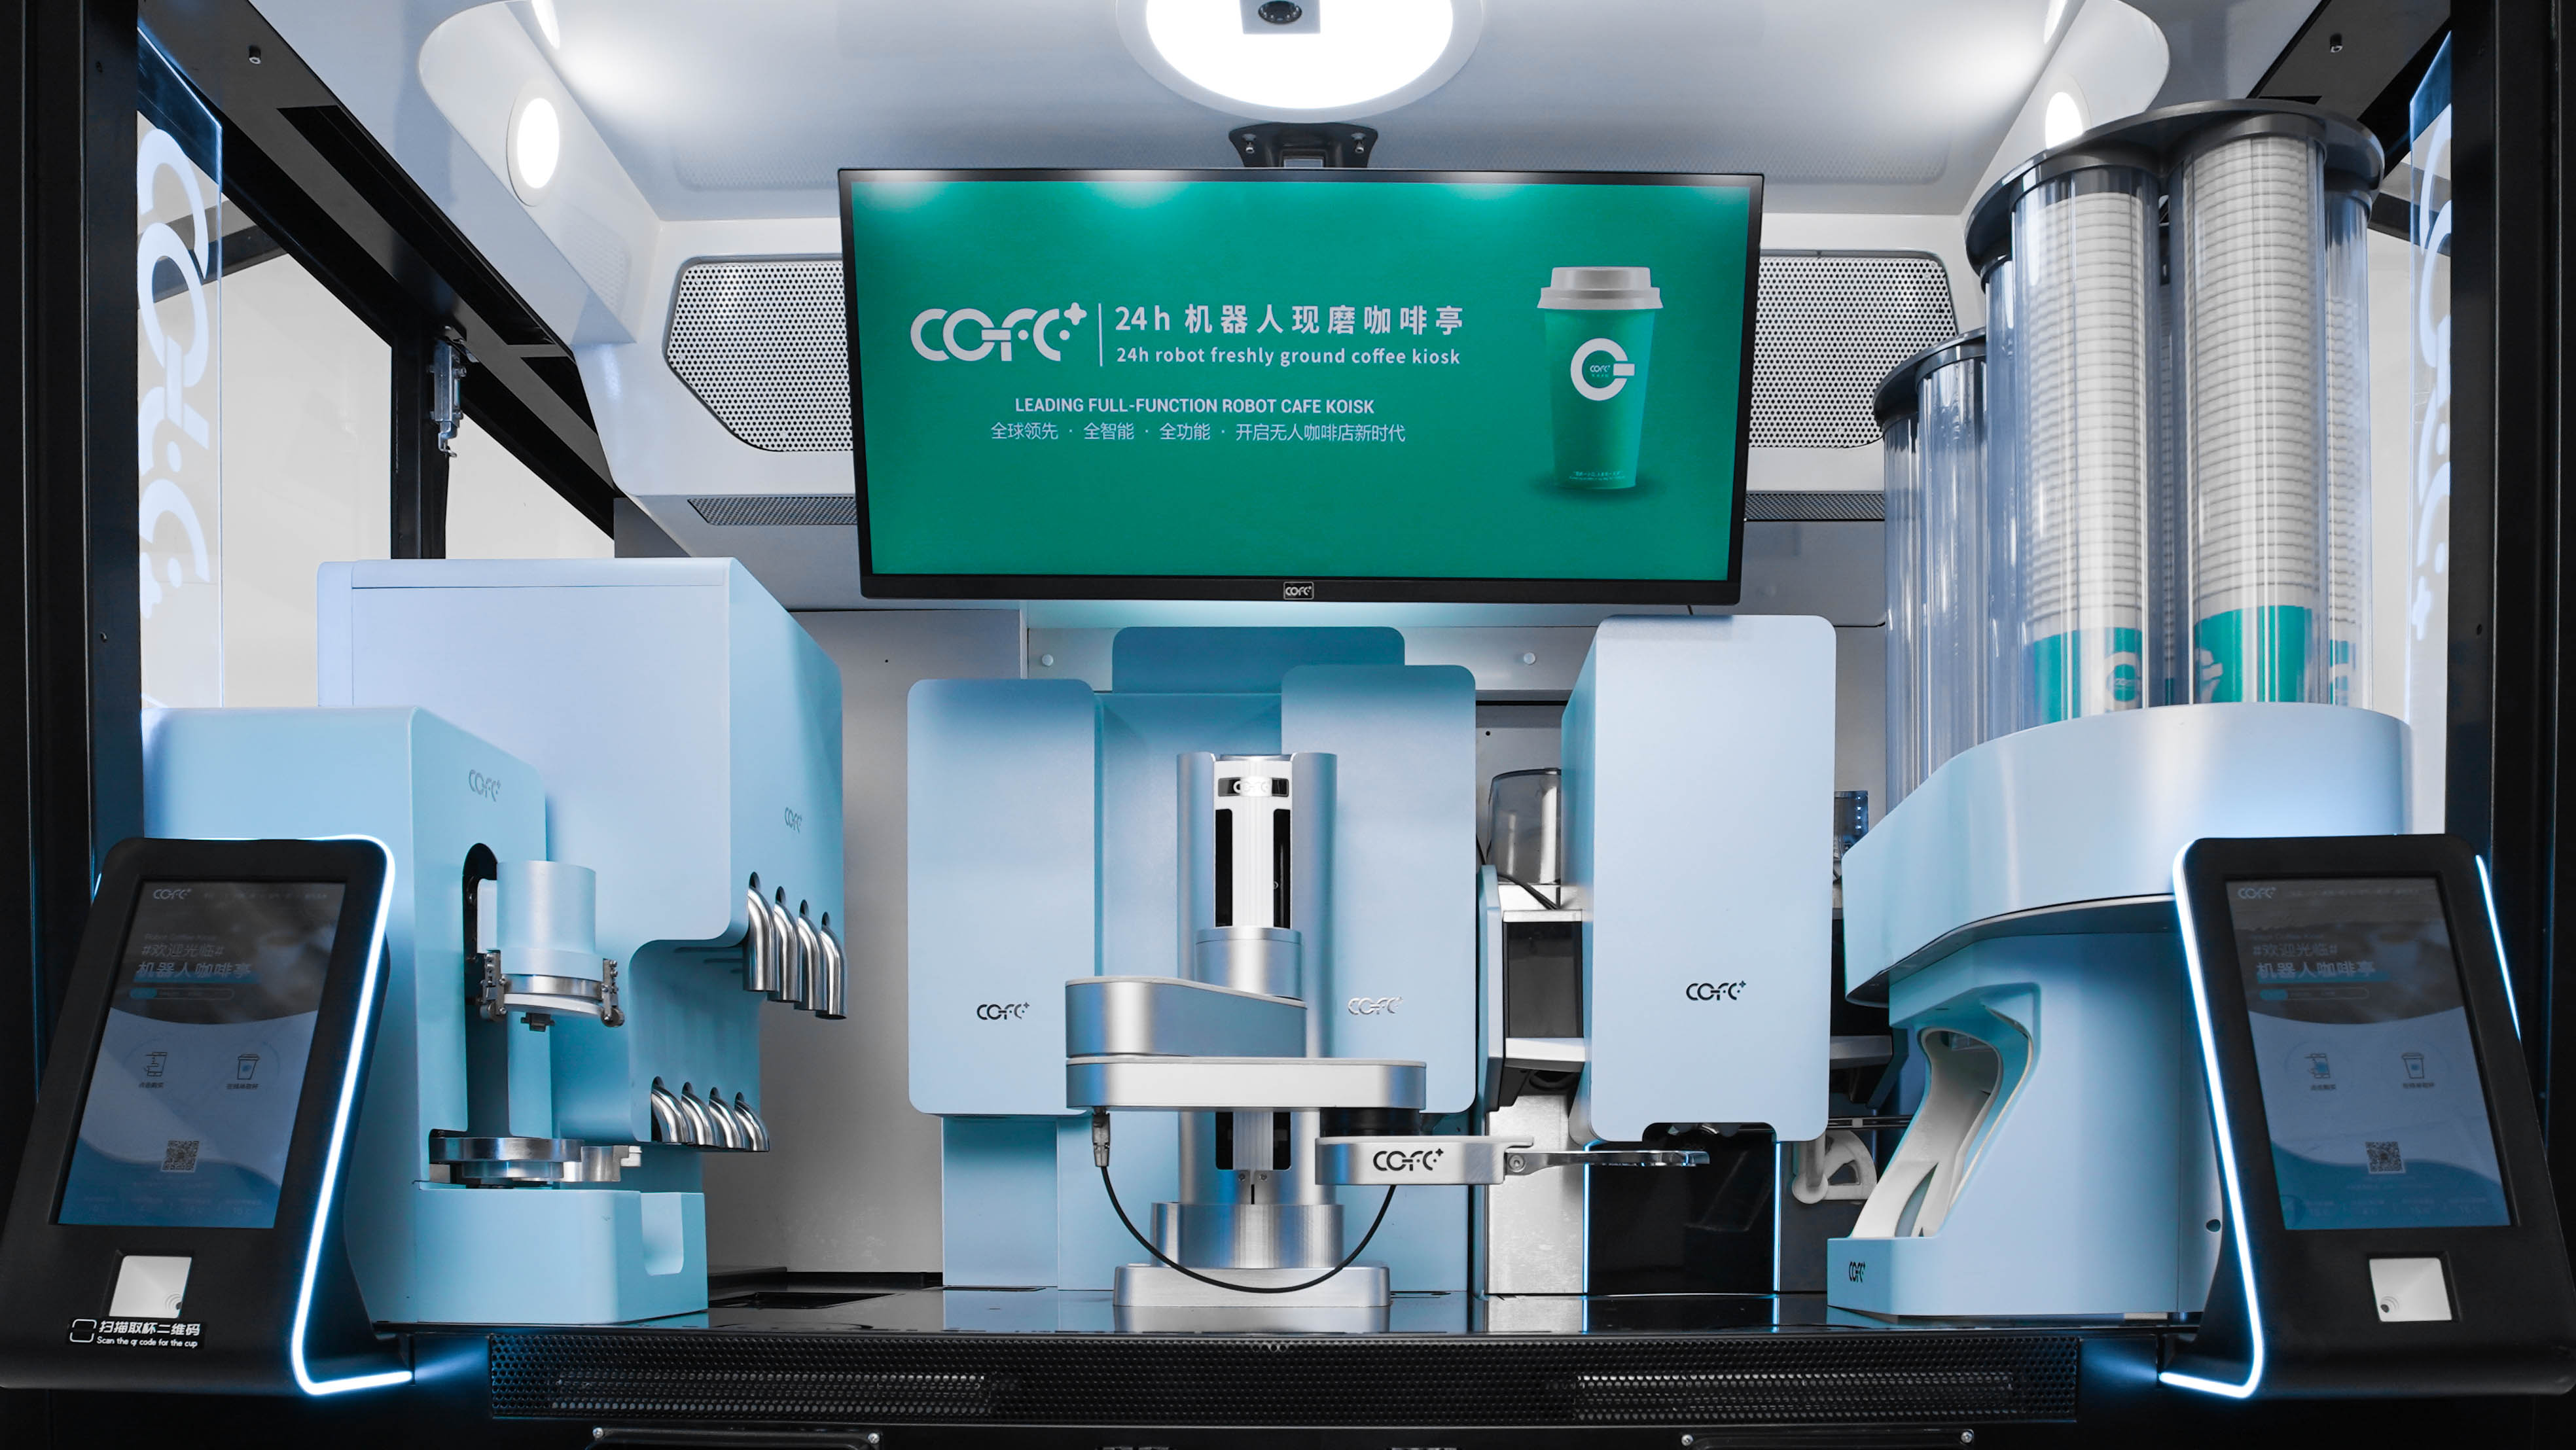 Big Data Technology Dissemination Summit closes with Robot Coffee to help transform the industry